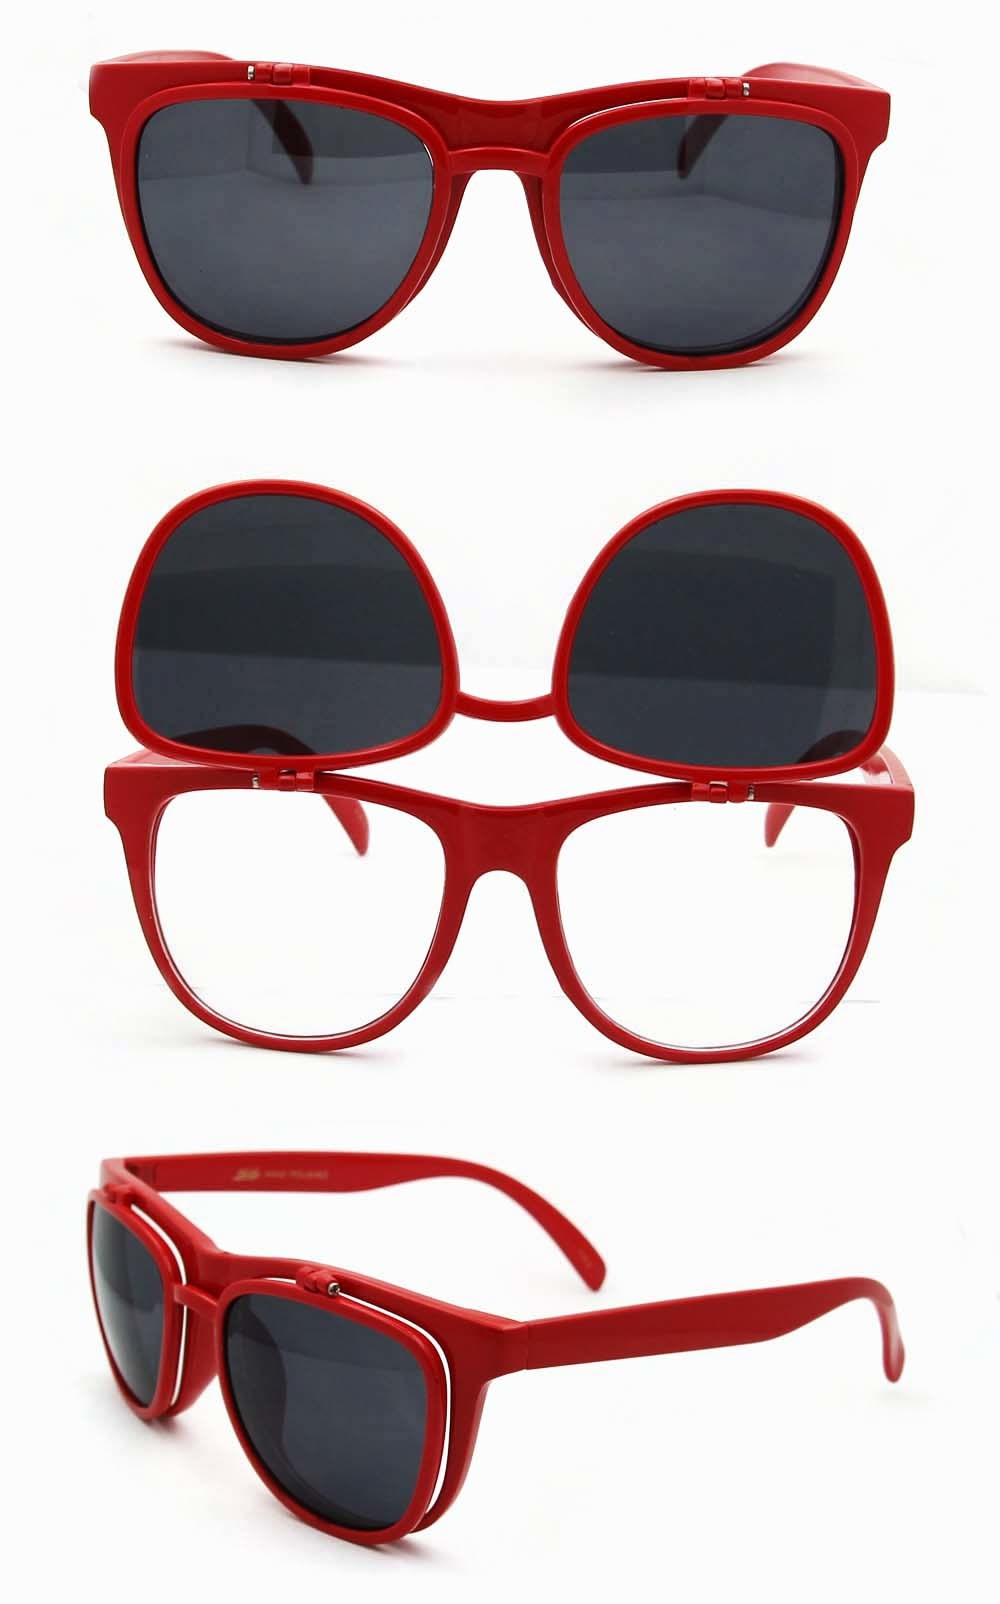 China Plastic Sunglasses (PS224) Photos & Pictures - made ...